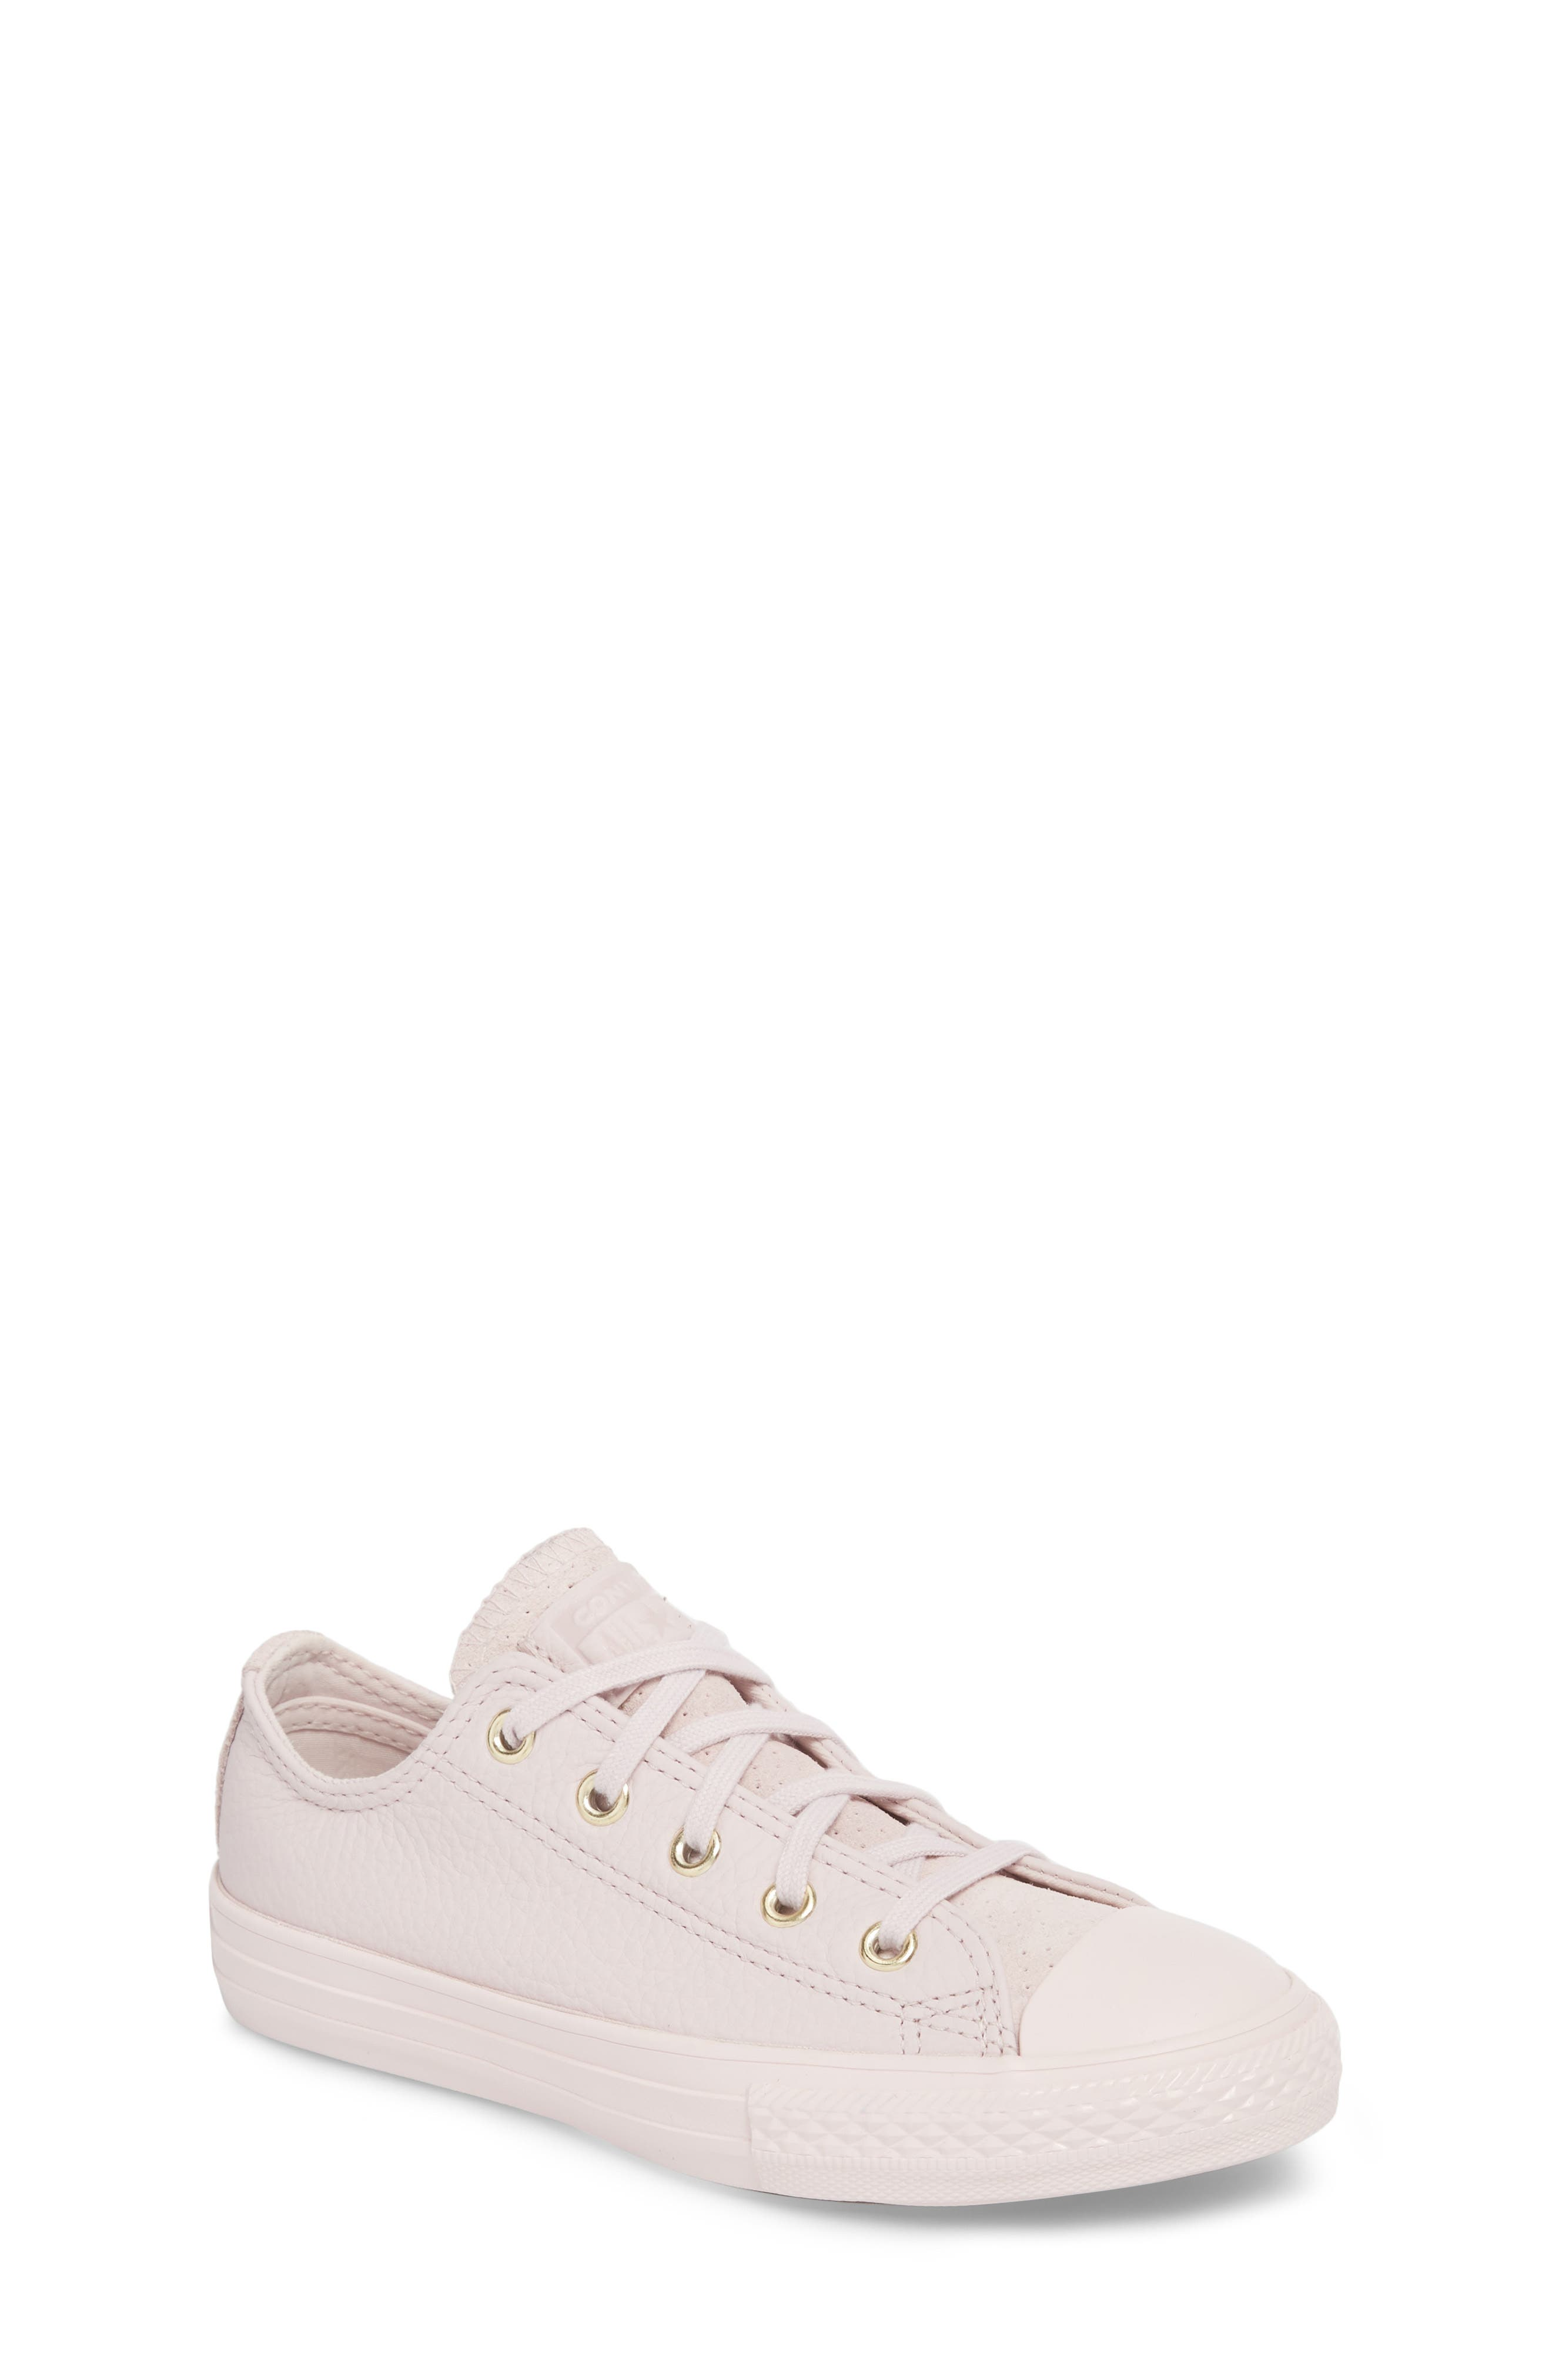 Chuck Taylor<sup>®</sup> All Star<sup>®</sup> Mono Low Top Sneaker,                         Main,                         color, 653